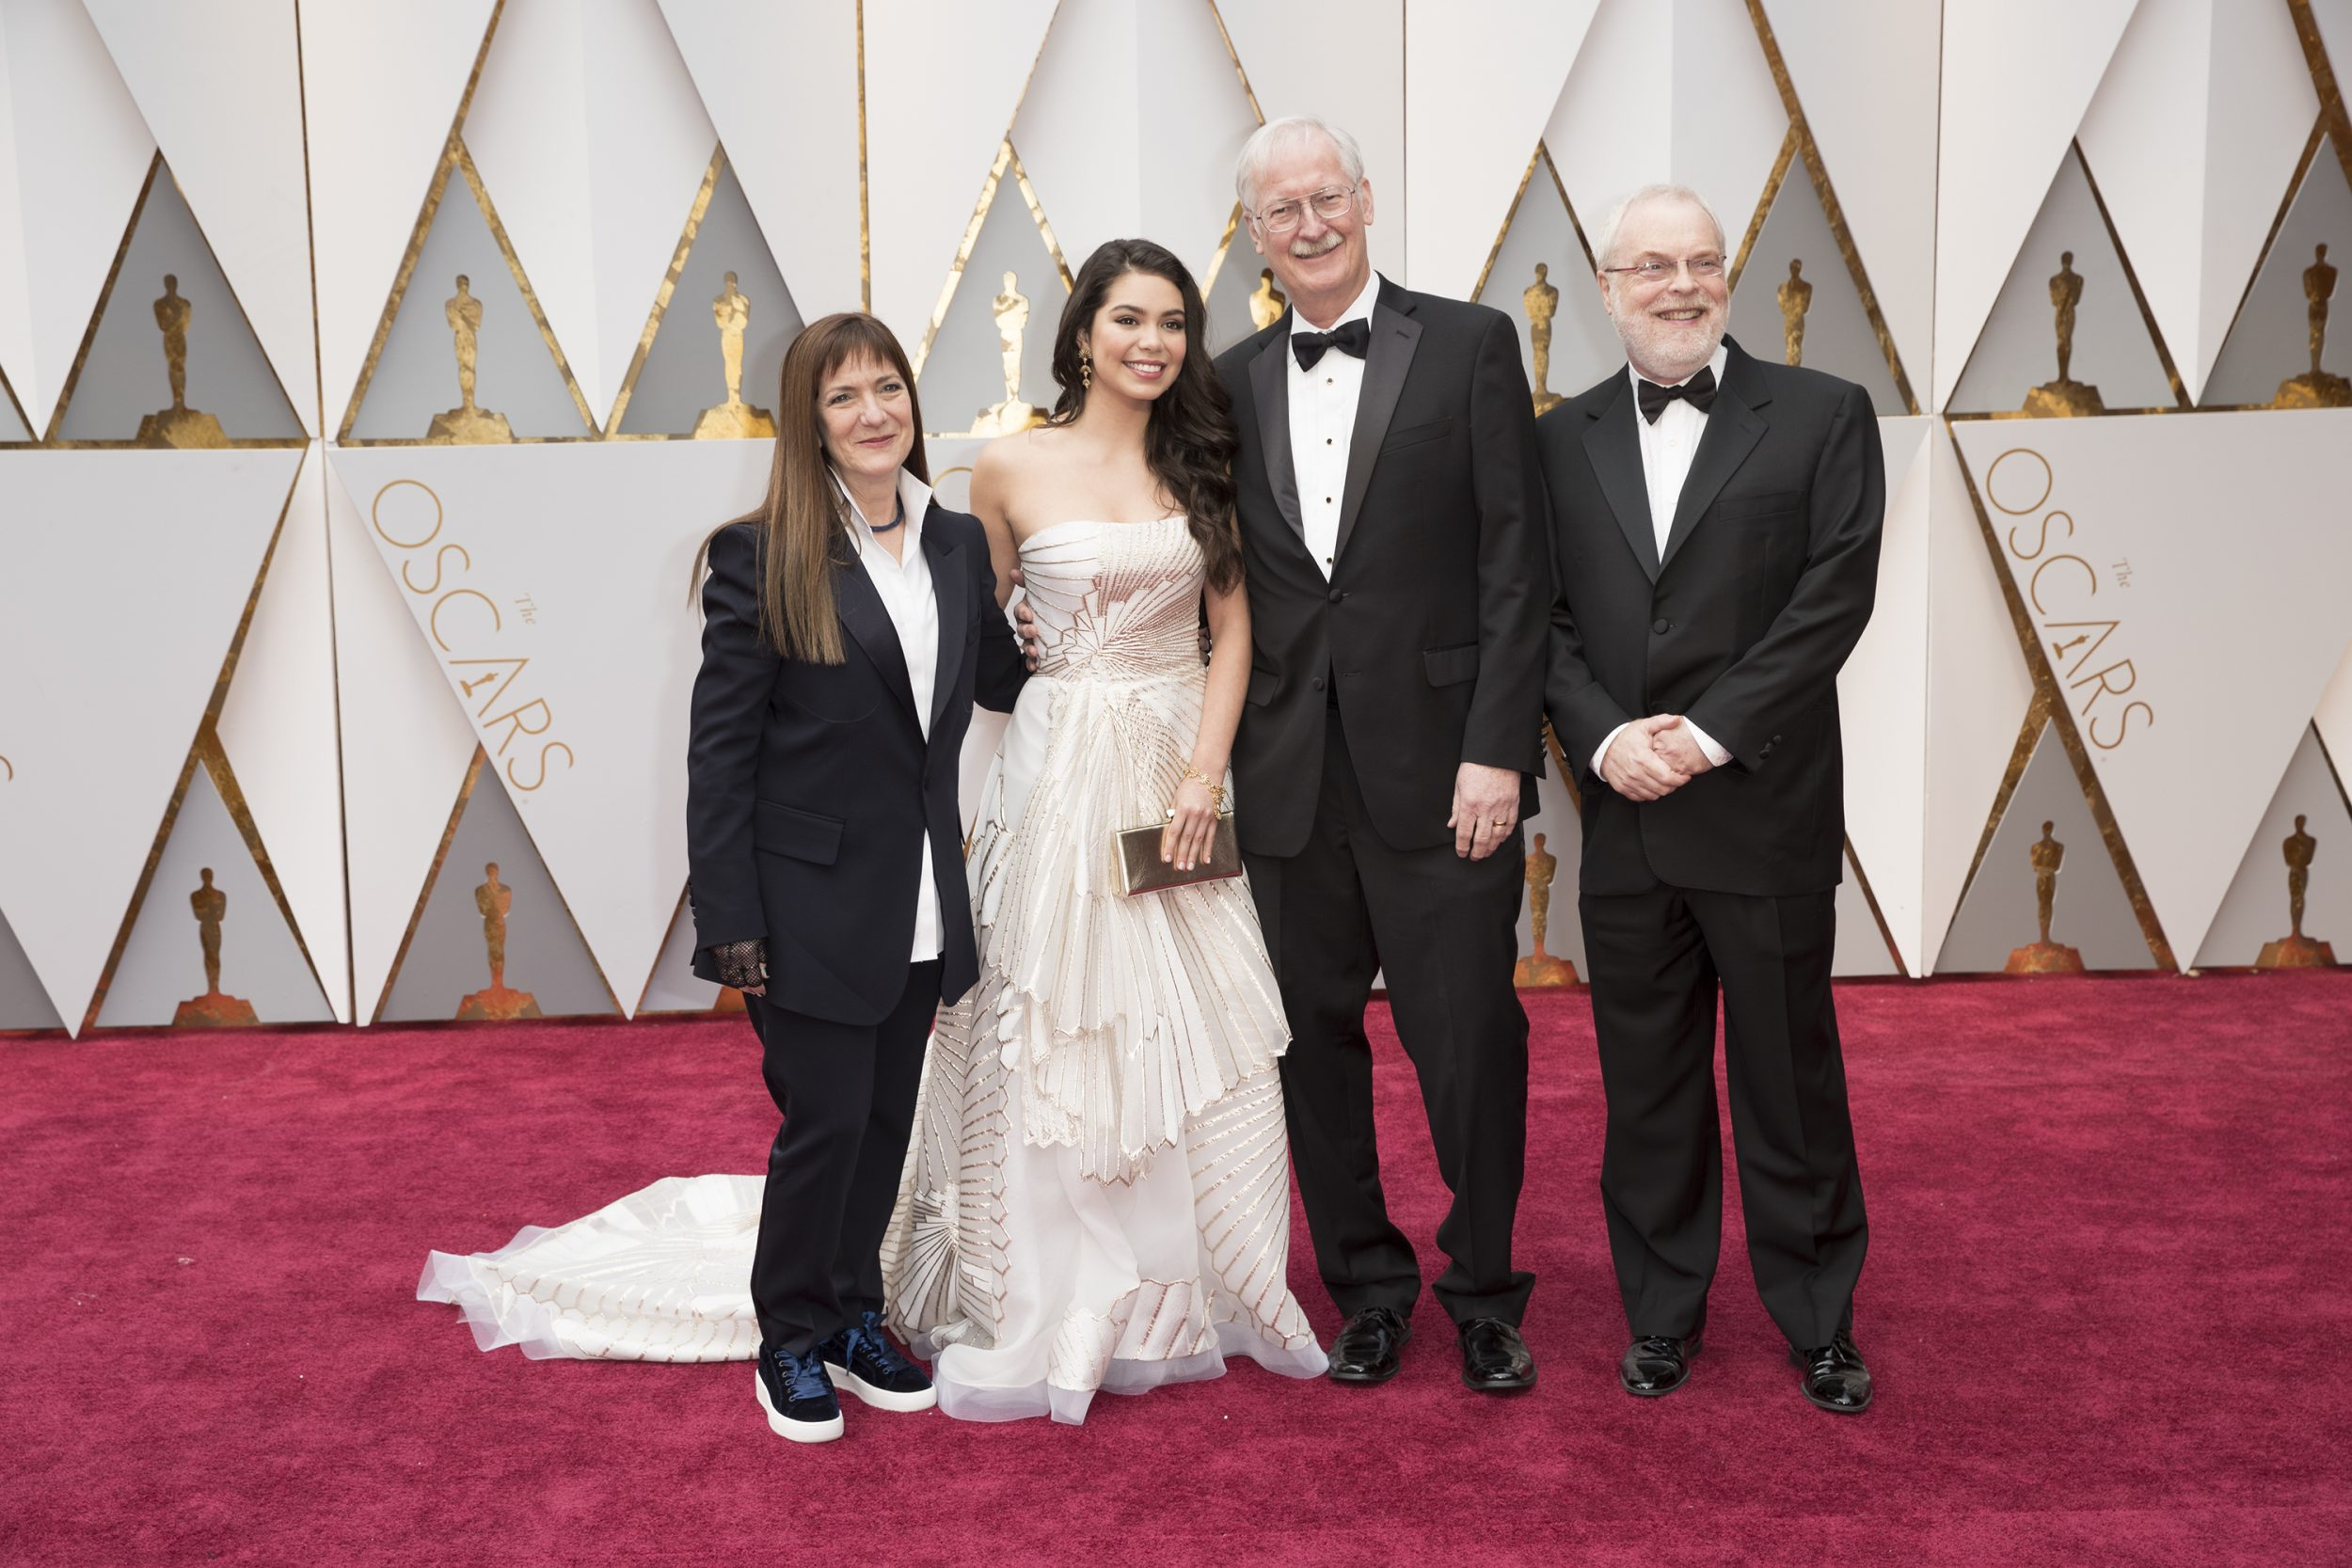 THE OSCARS(r) - The 89th Oscars(r)  broadcasts live on Oscar(r) SUNDAY, FEBRUARY 26, 2017, on the ABC Television Network. (ABC/Tyler Golden) OSNAT SHURER, AULI'I CRAVALHO, JOHN MUSKER, RON CLEMENTS